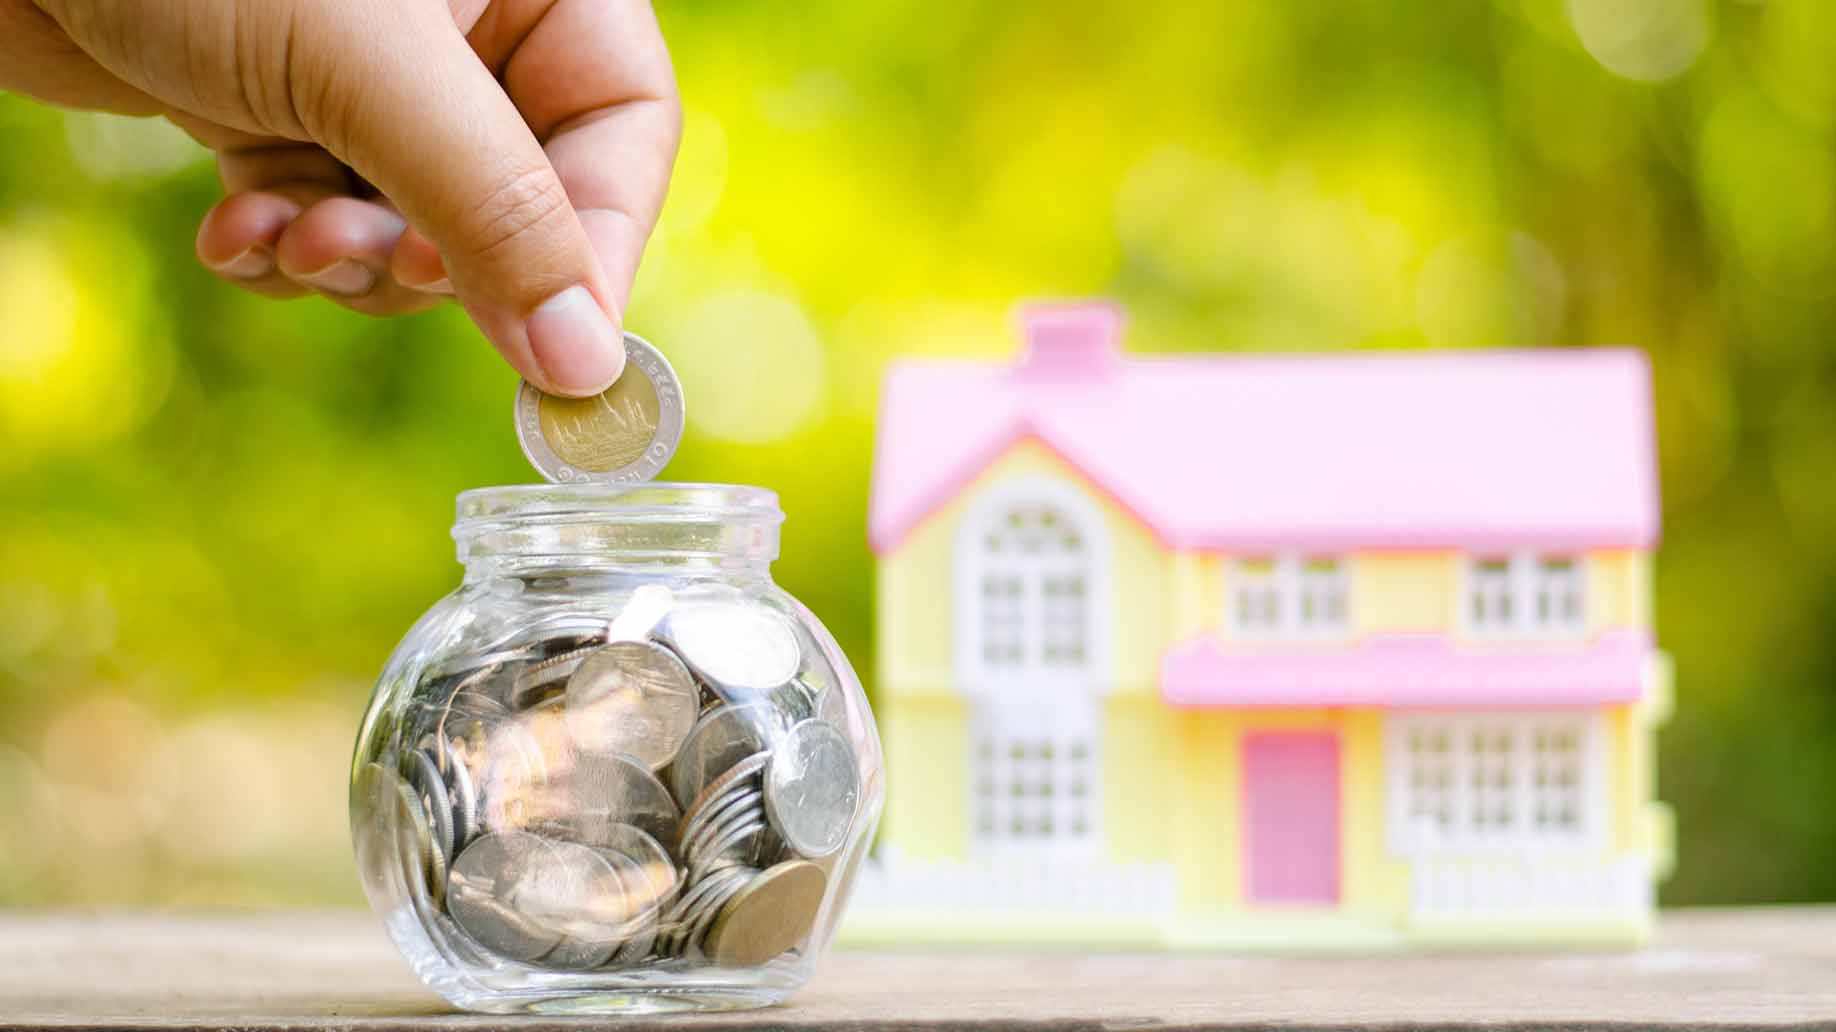 Saving Tips from Land Home Financial